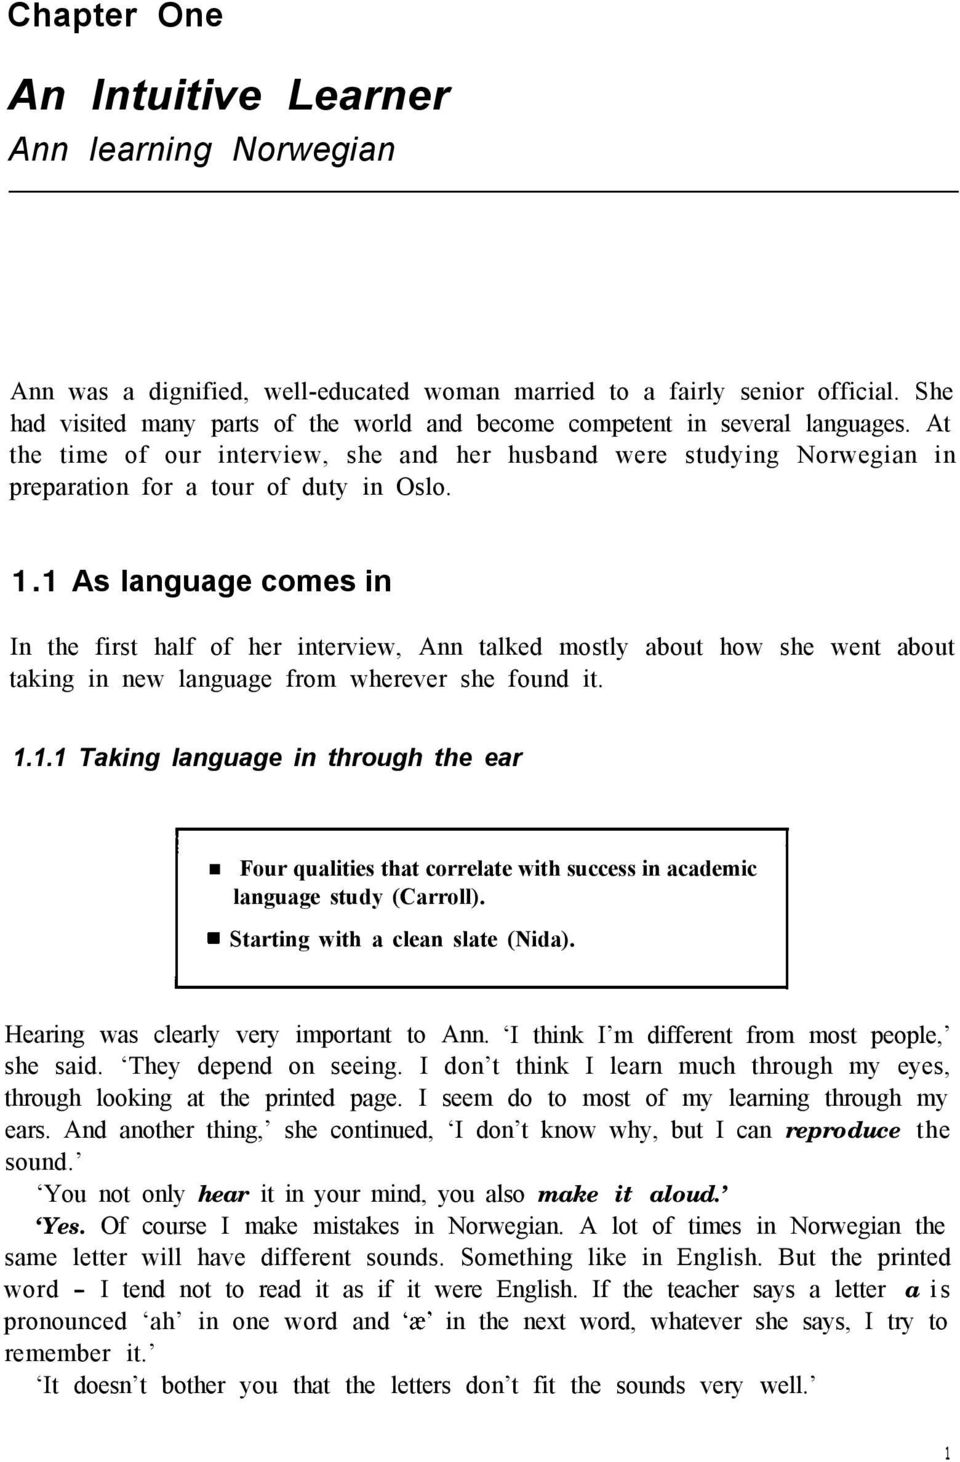 1.1 As language comes in In the first half of her interview, Ann talked mostly about how she went about taking in new language from wherever she found it. 1.1.1 Taking language in through the ear I I Four qualities that correlate with success in academic language study (Carroll).